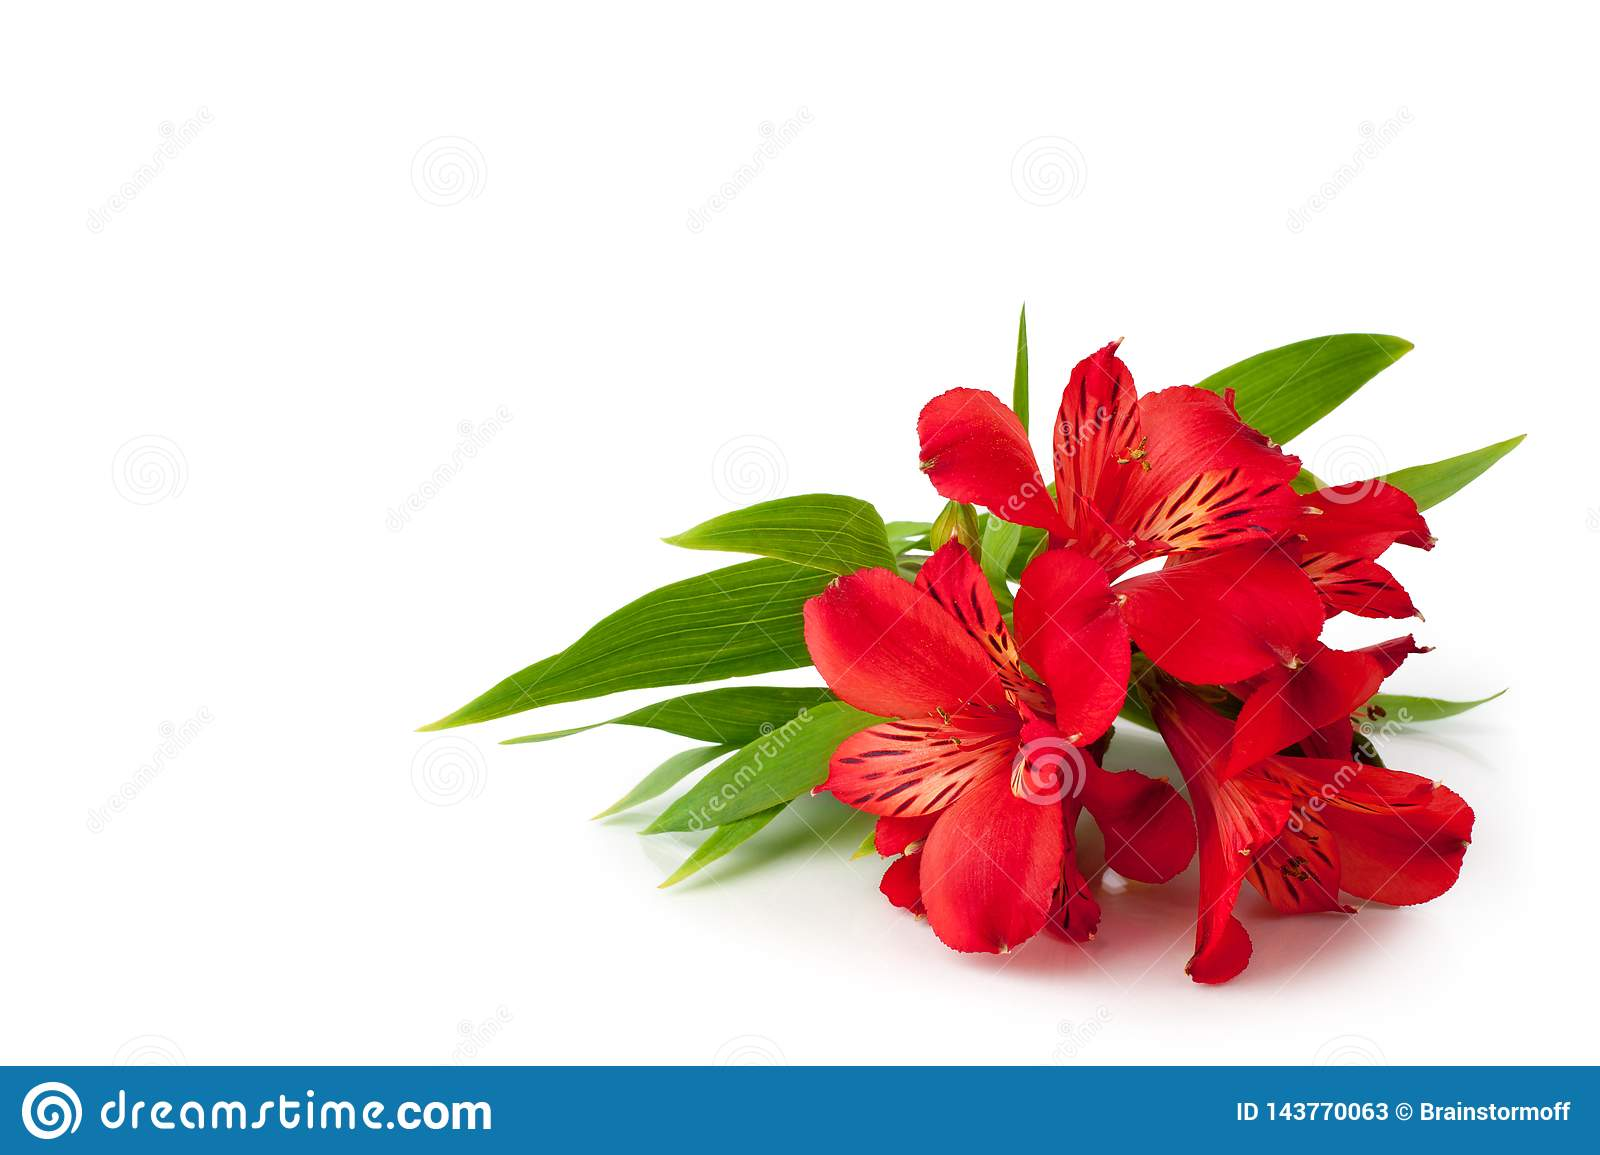 Red alstroemeria flowers on white background isolated closeup, bright pink lily flowers bunch for decorative border